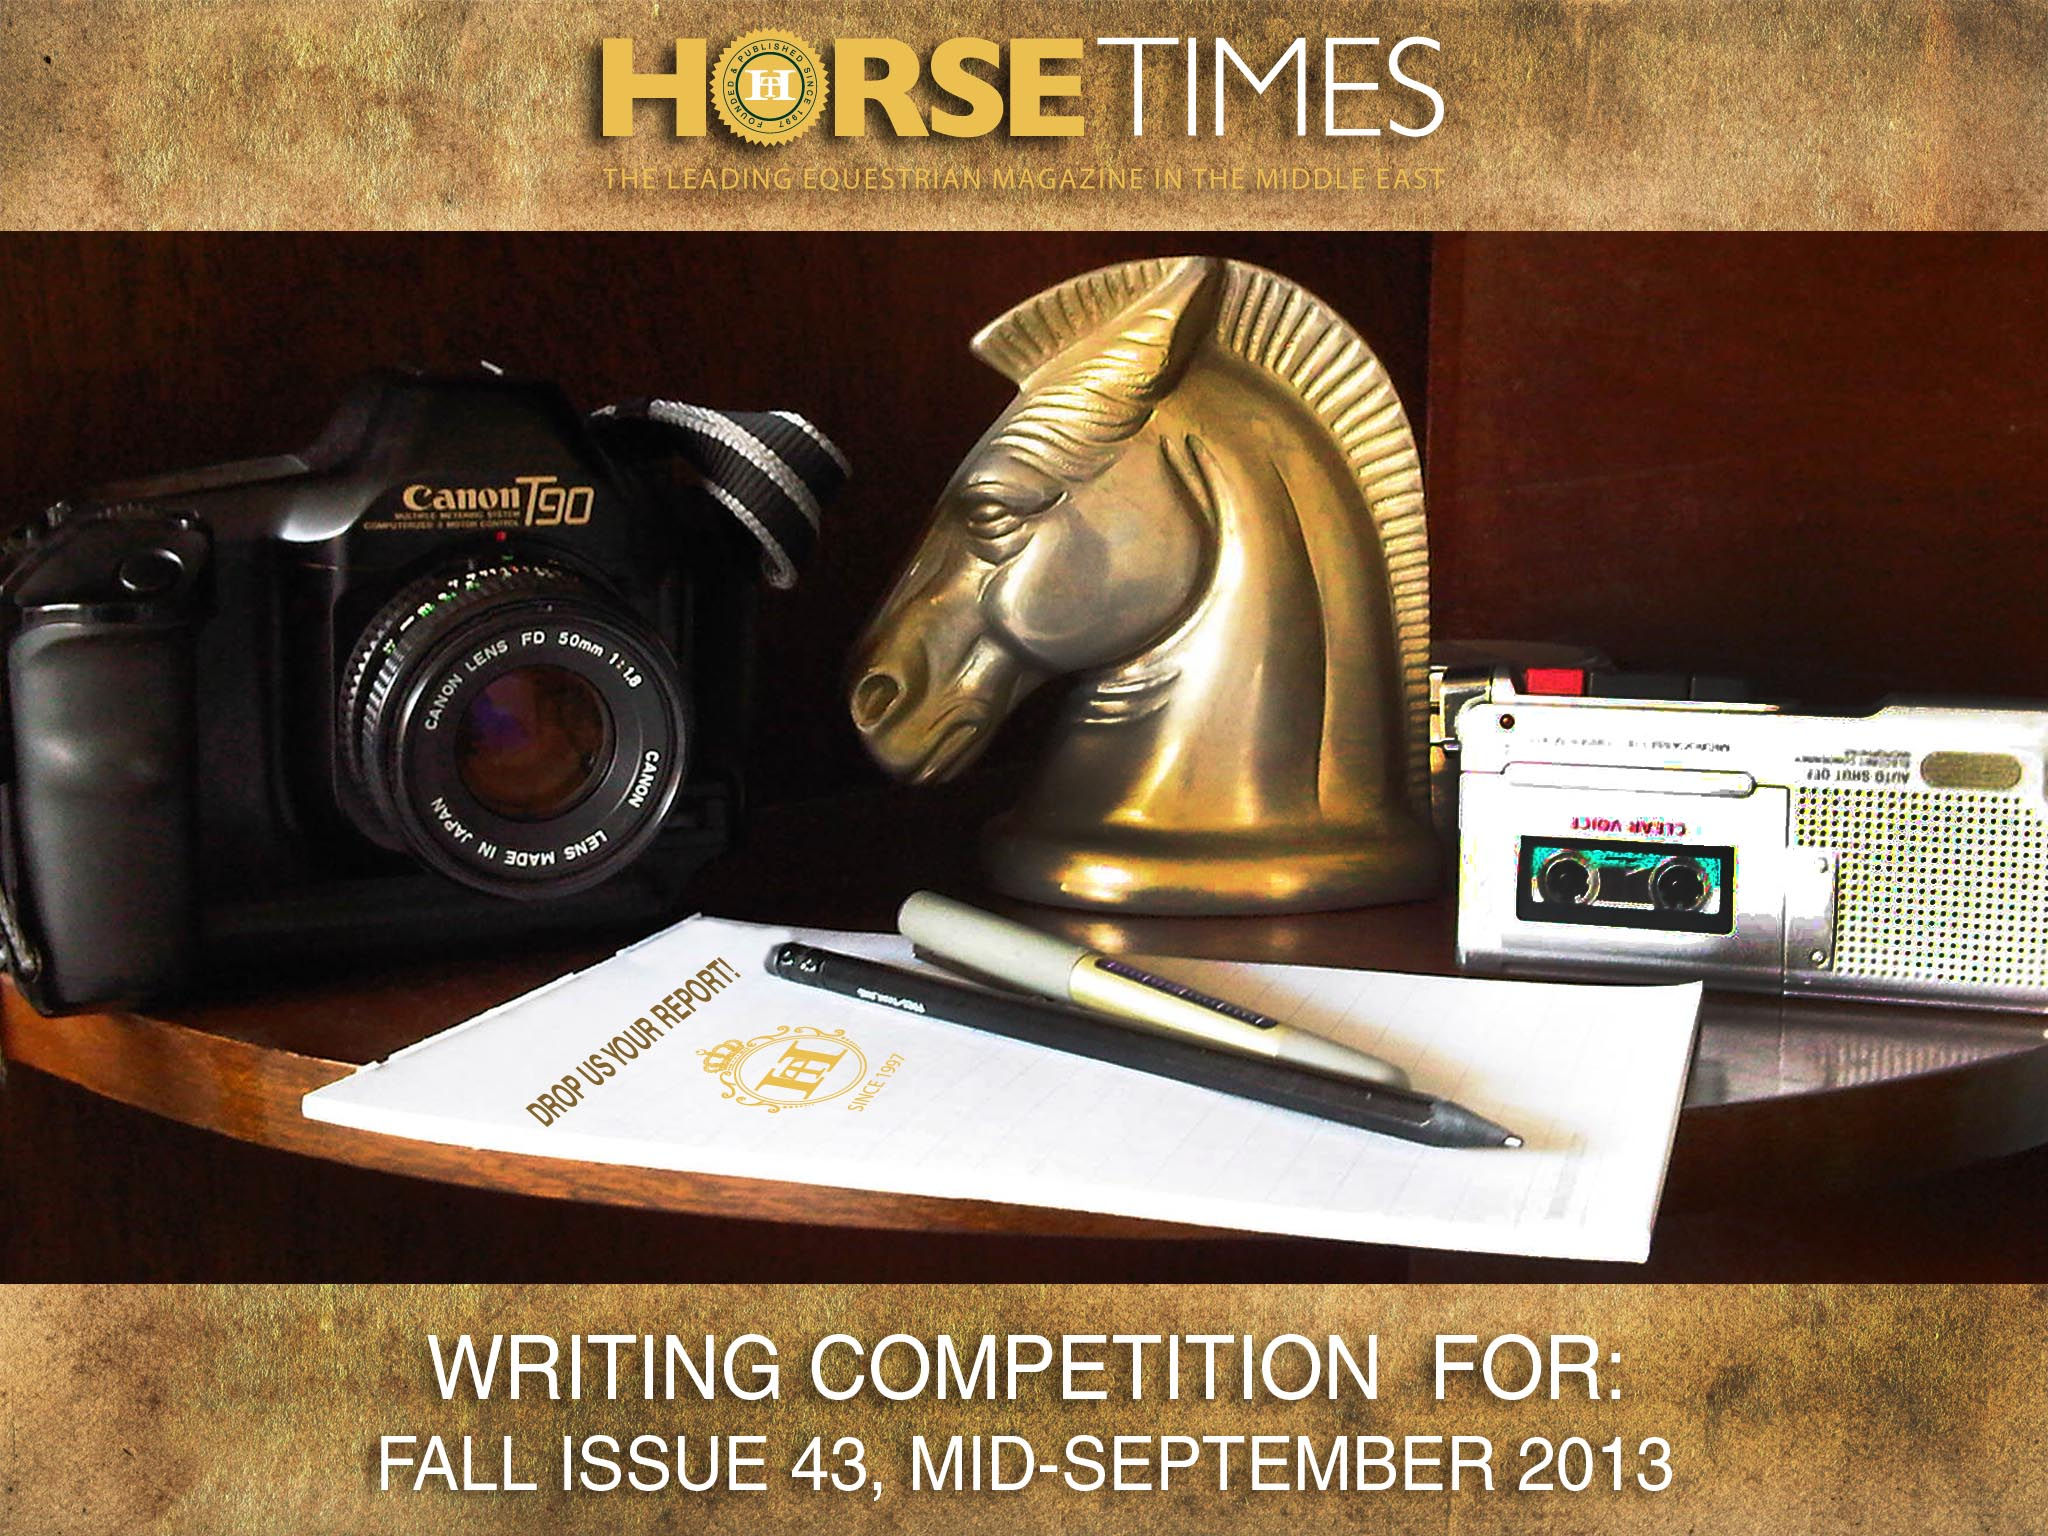 Horse Times Egypt: Equestrian Magazine :News :HORSE TIMES FALL ISSUE 43 WRITING COMPETITION